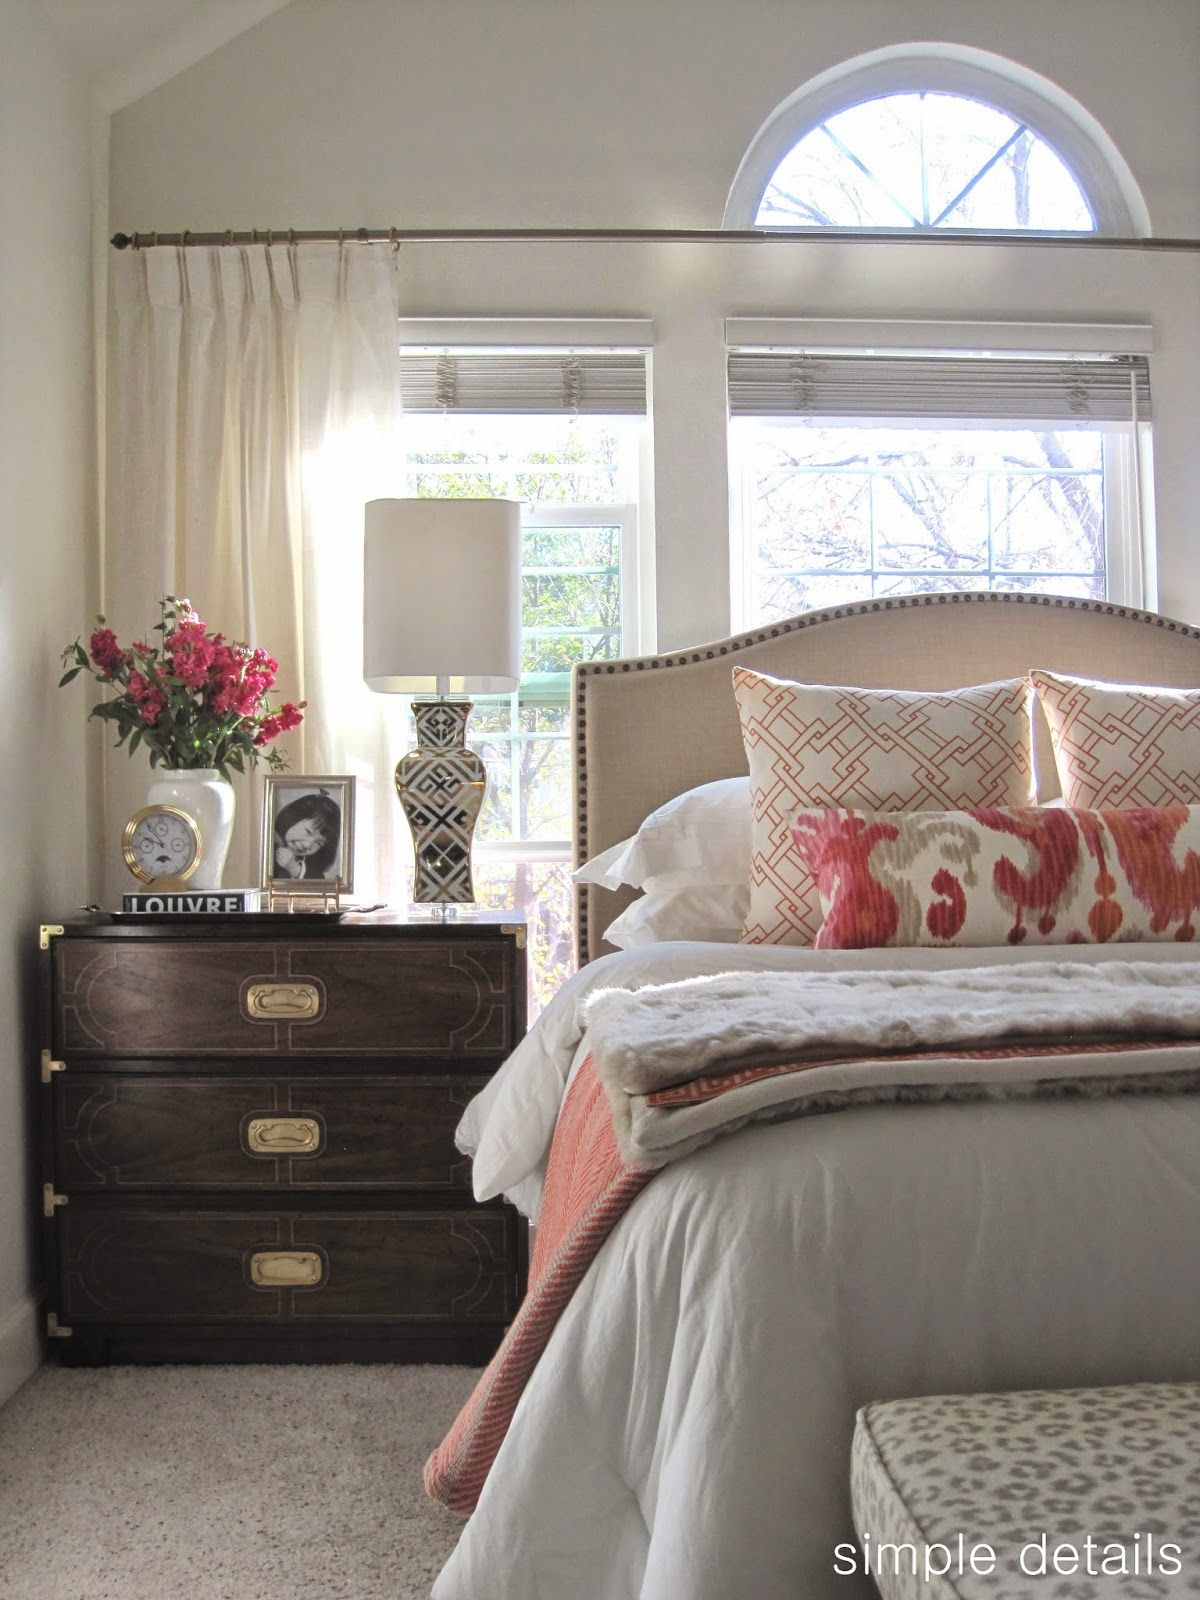 The best tips for budget friendly bedroom makeovers one room